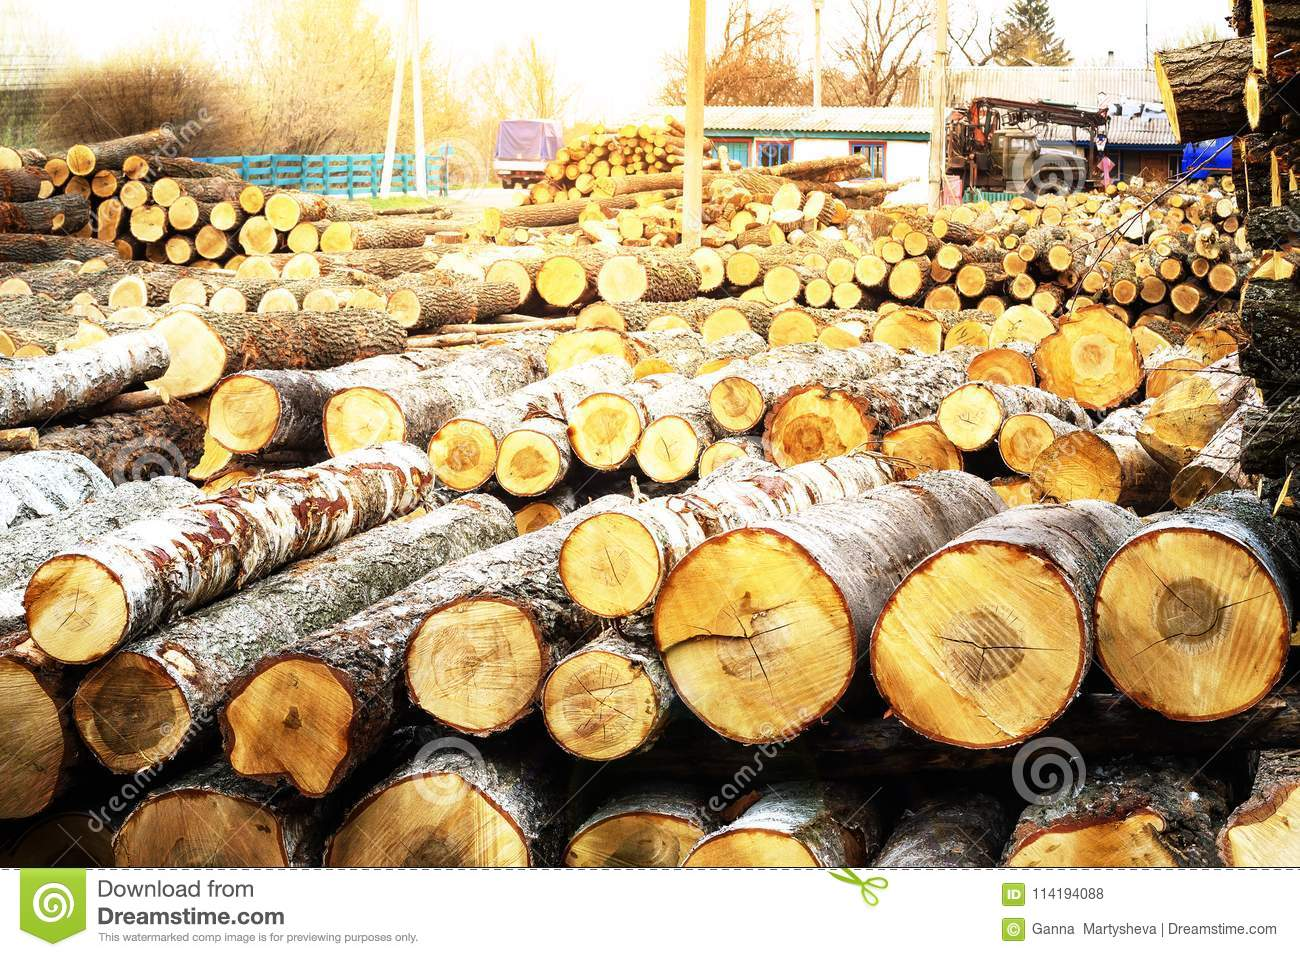 Sawmill, Wood, Timber, Logs, Boards, Raw Materials, Industry